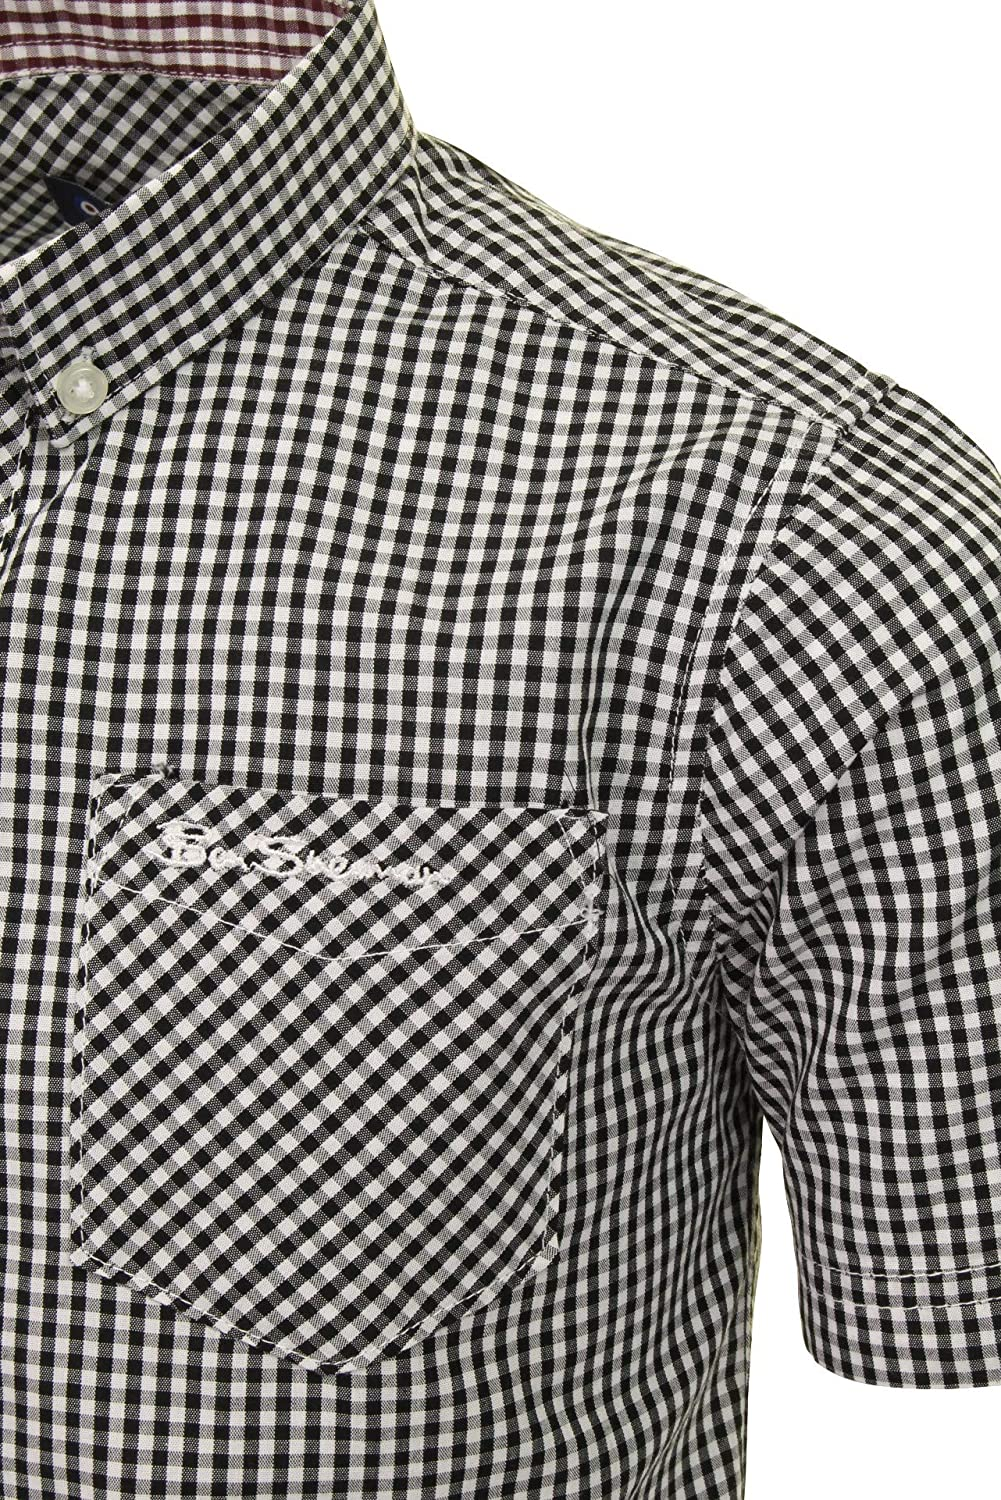 Ben Sherman Boys Short Sleeved Shirt Black Gingham Ages 7 Years up to 15 Years